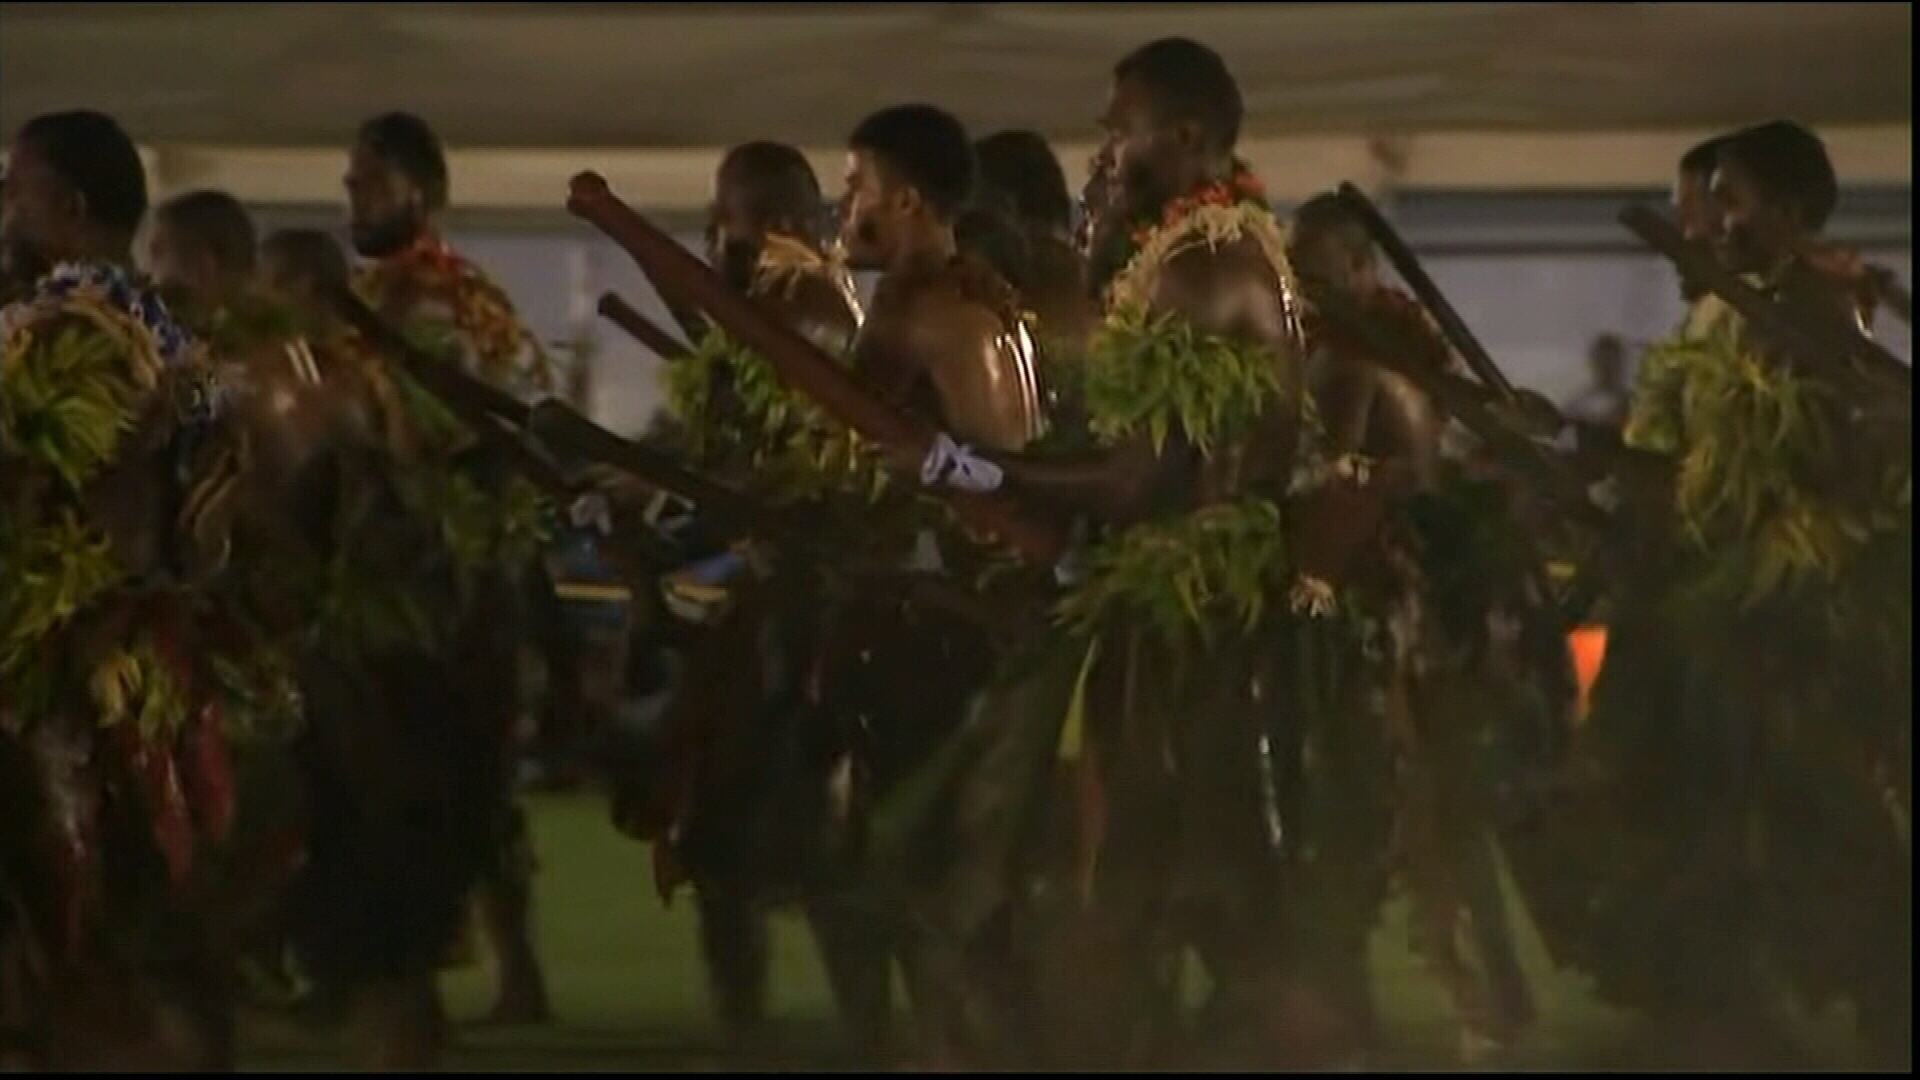 Fijian men perform for royal couple